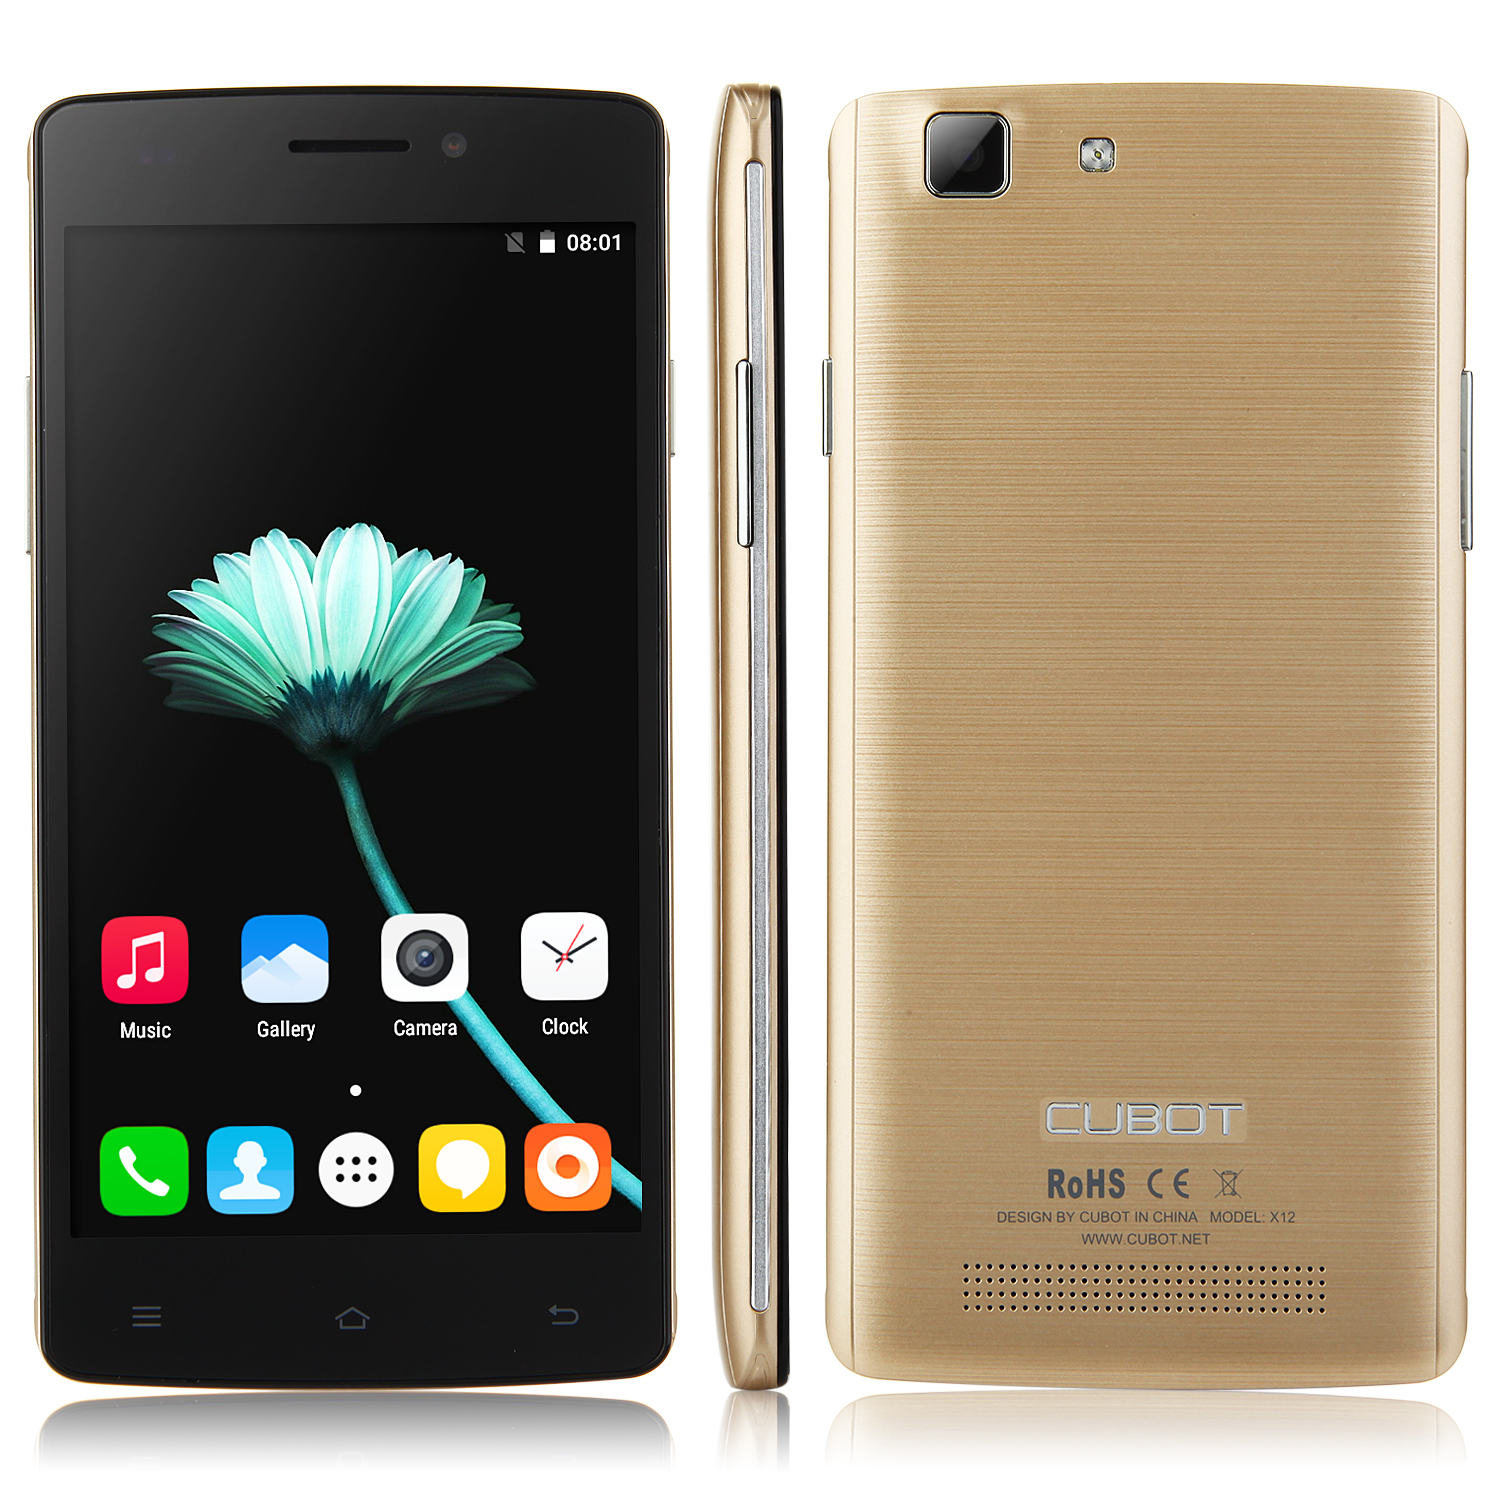 Cubot X12 4G Smartphone 64bit 5.0 Inch Android 5.1 MTK6735M Quad Core 1GB 8GB Gold